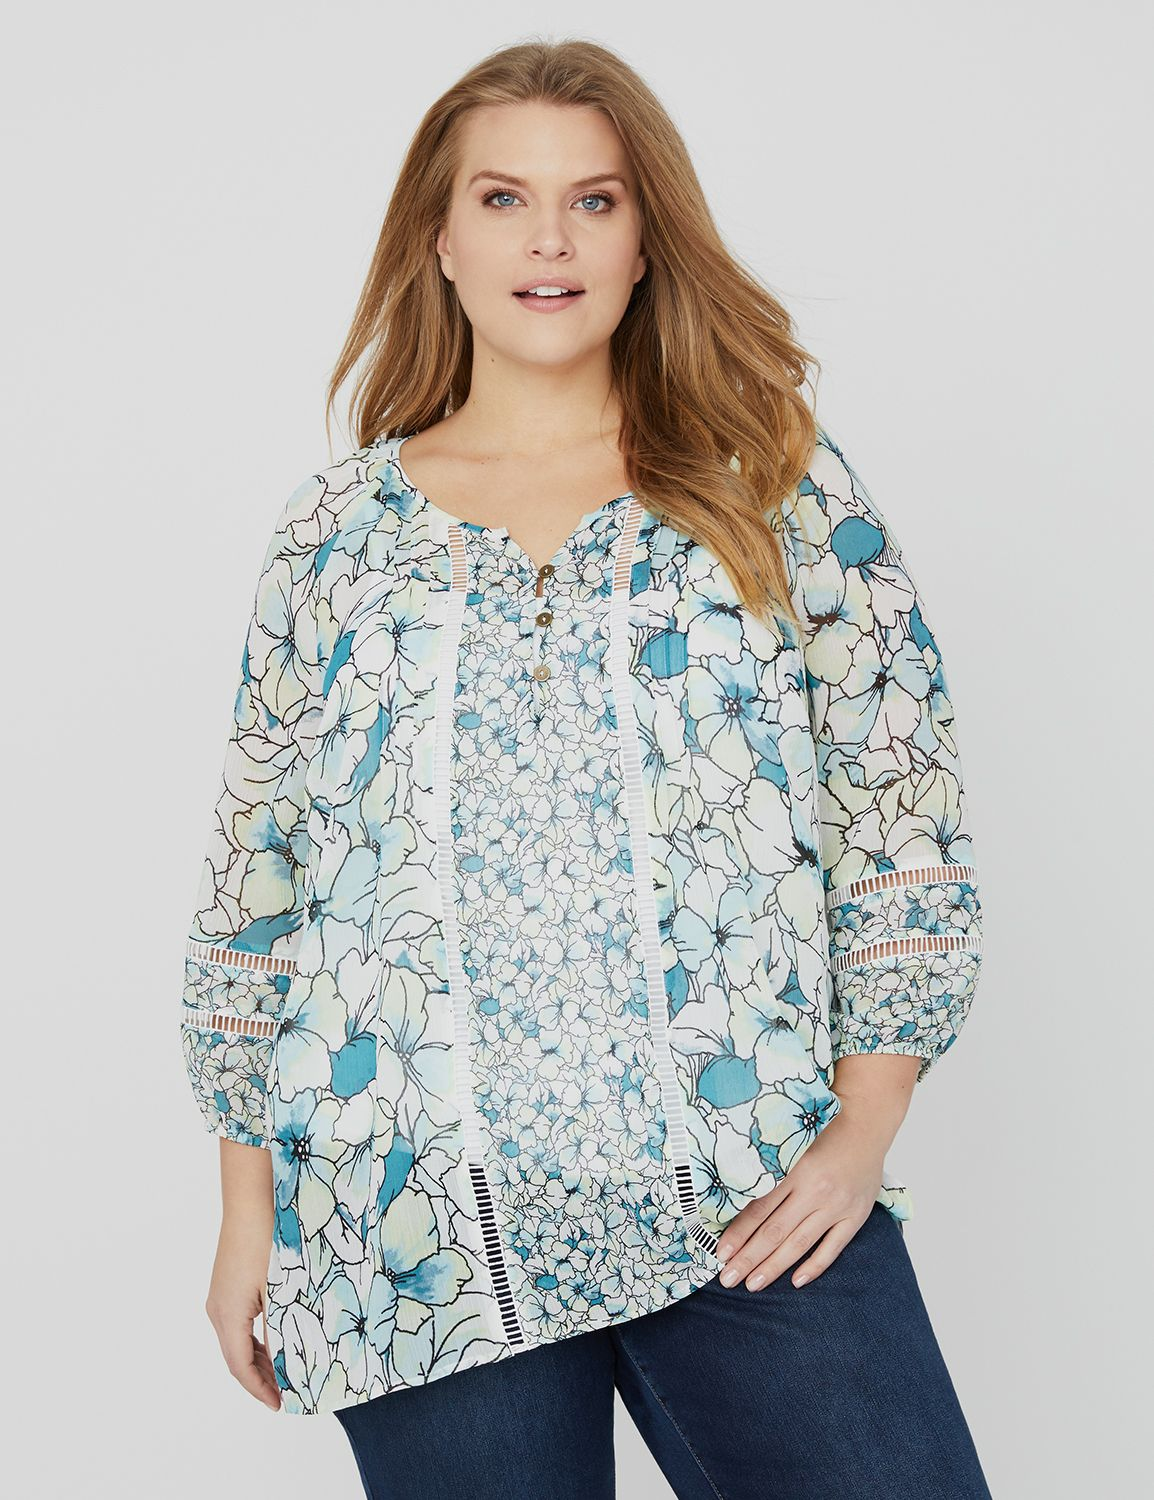 Floral Courtyard Blouse Floral Courtyard Blouse MP-300103591